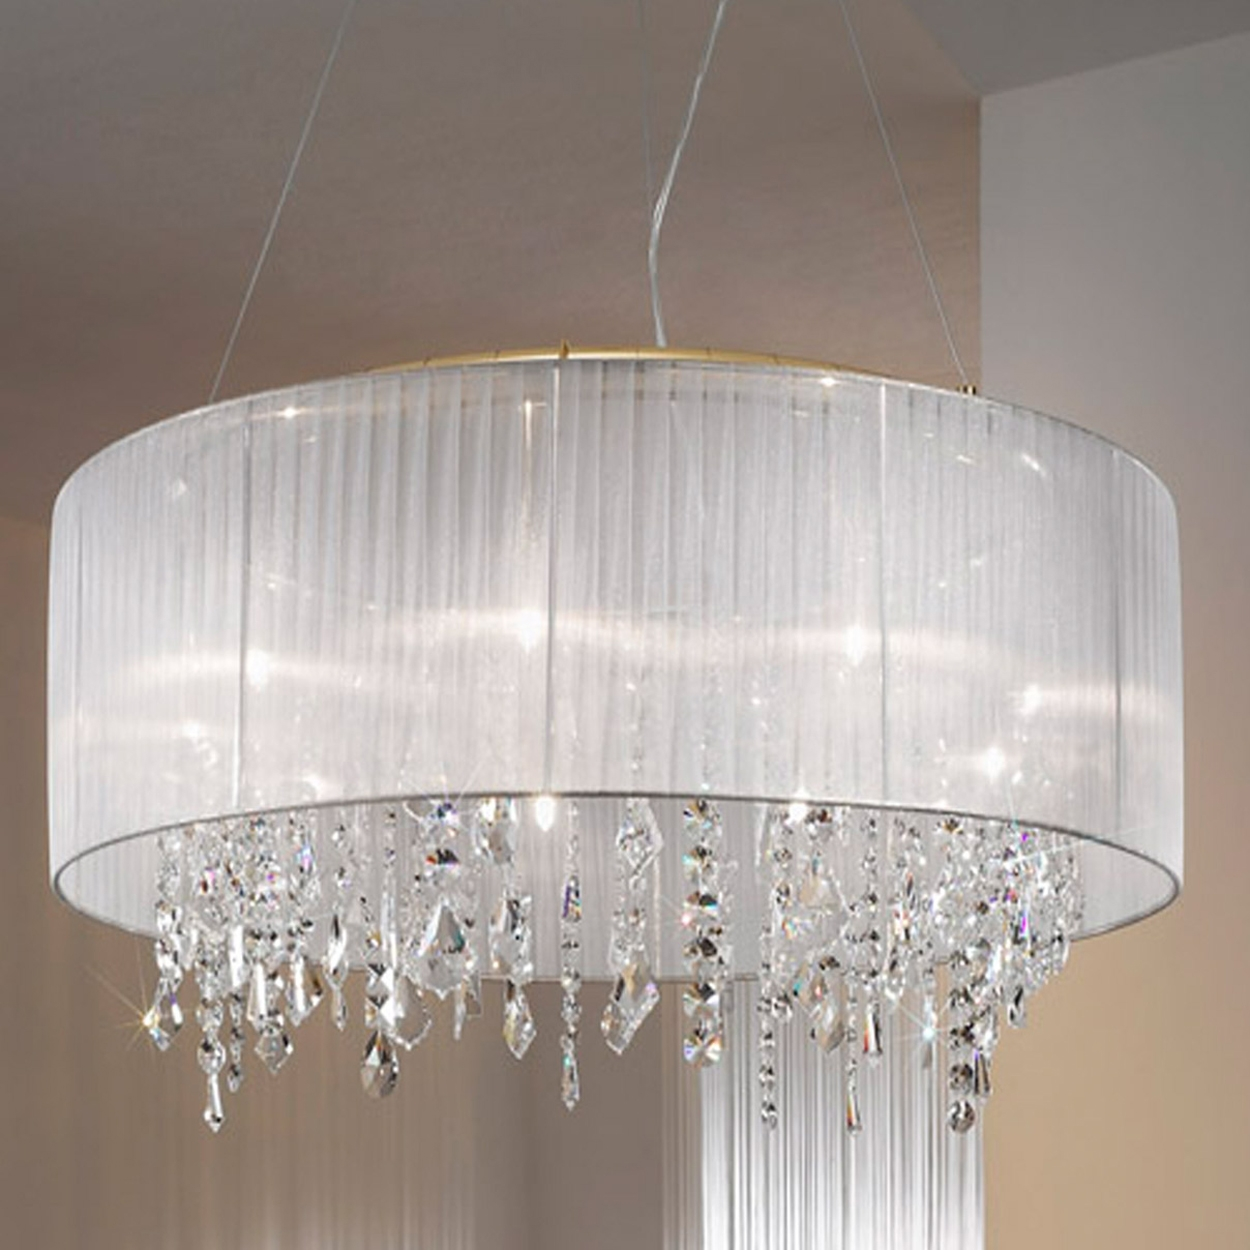 Decorative Lamp Shades For Chandeliers Best Home Decor Inspirations Intended For Chandelier Lampshades (Image 13 of 25)